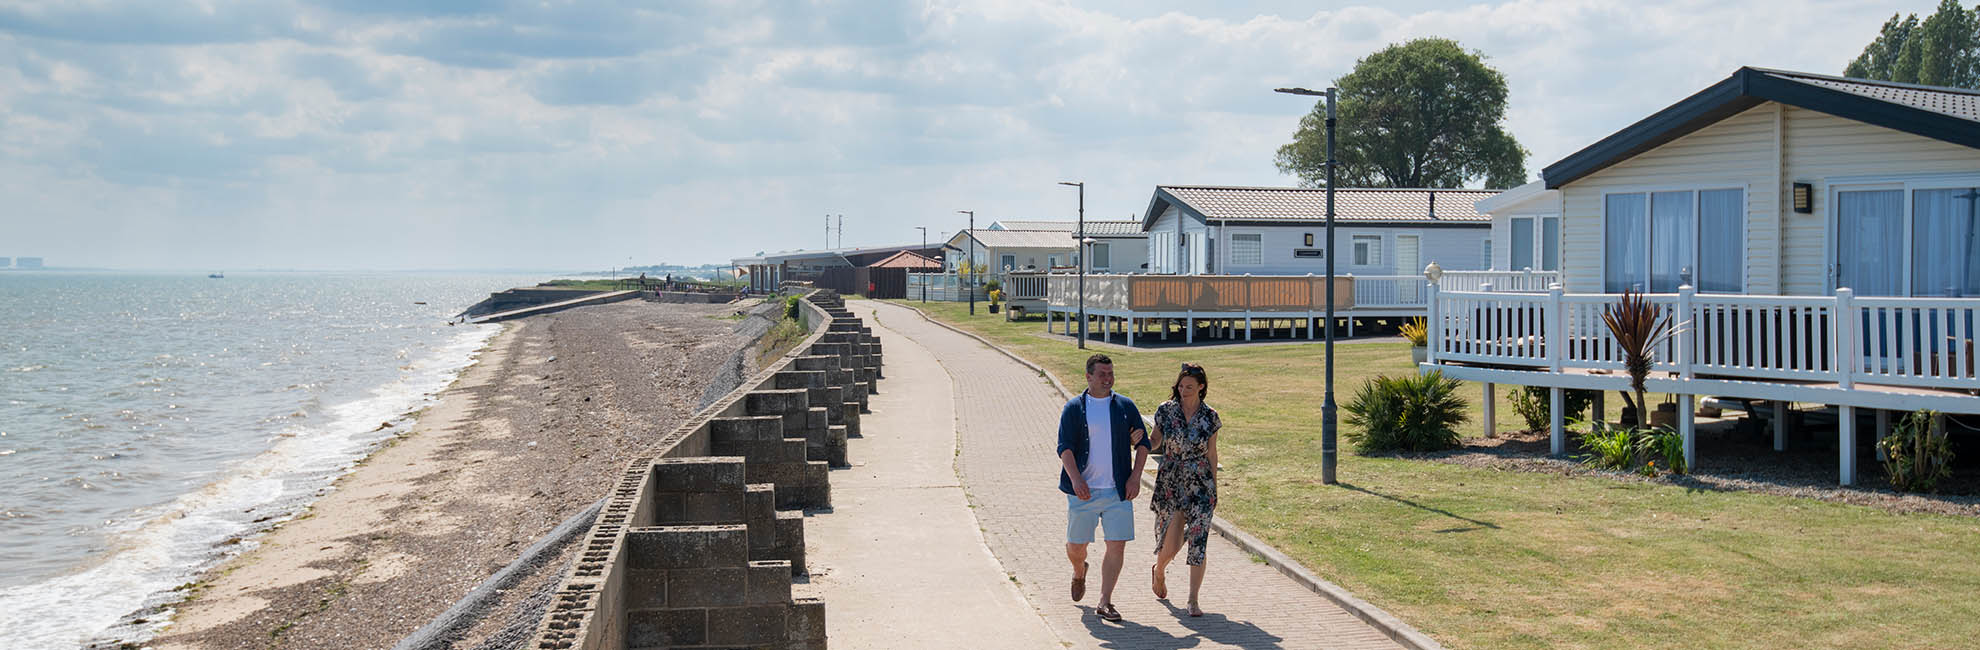 e8d6cf9b20345 Coopers Beach Holiday Park, Essex | Parkdean Resorts